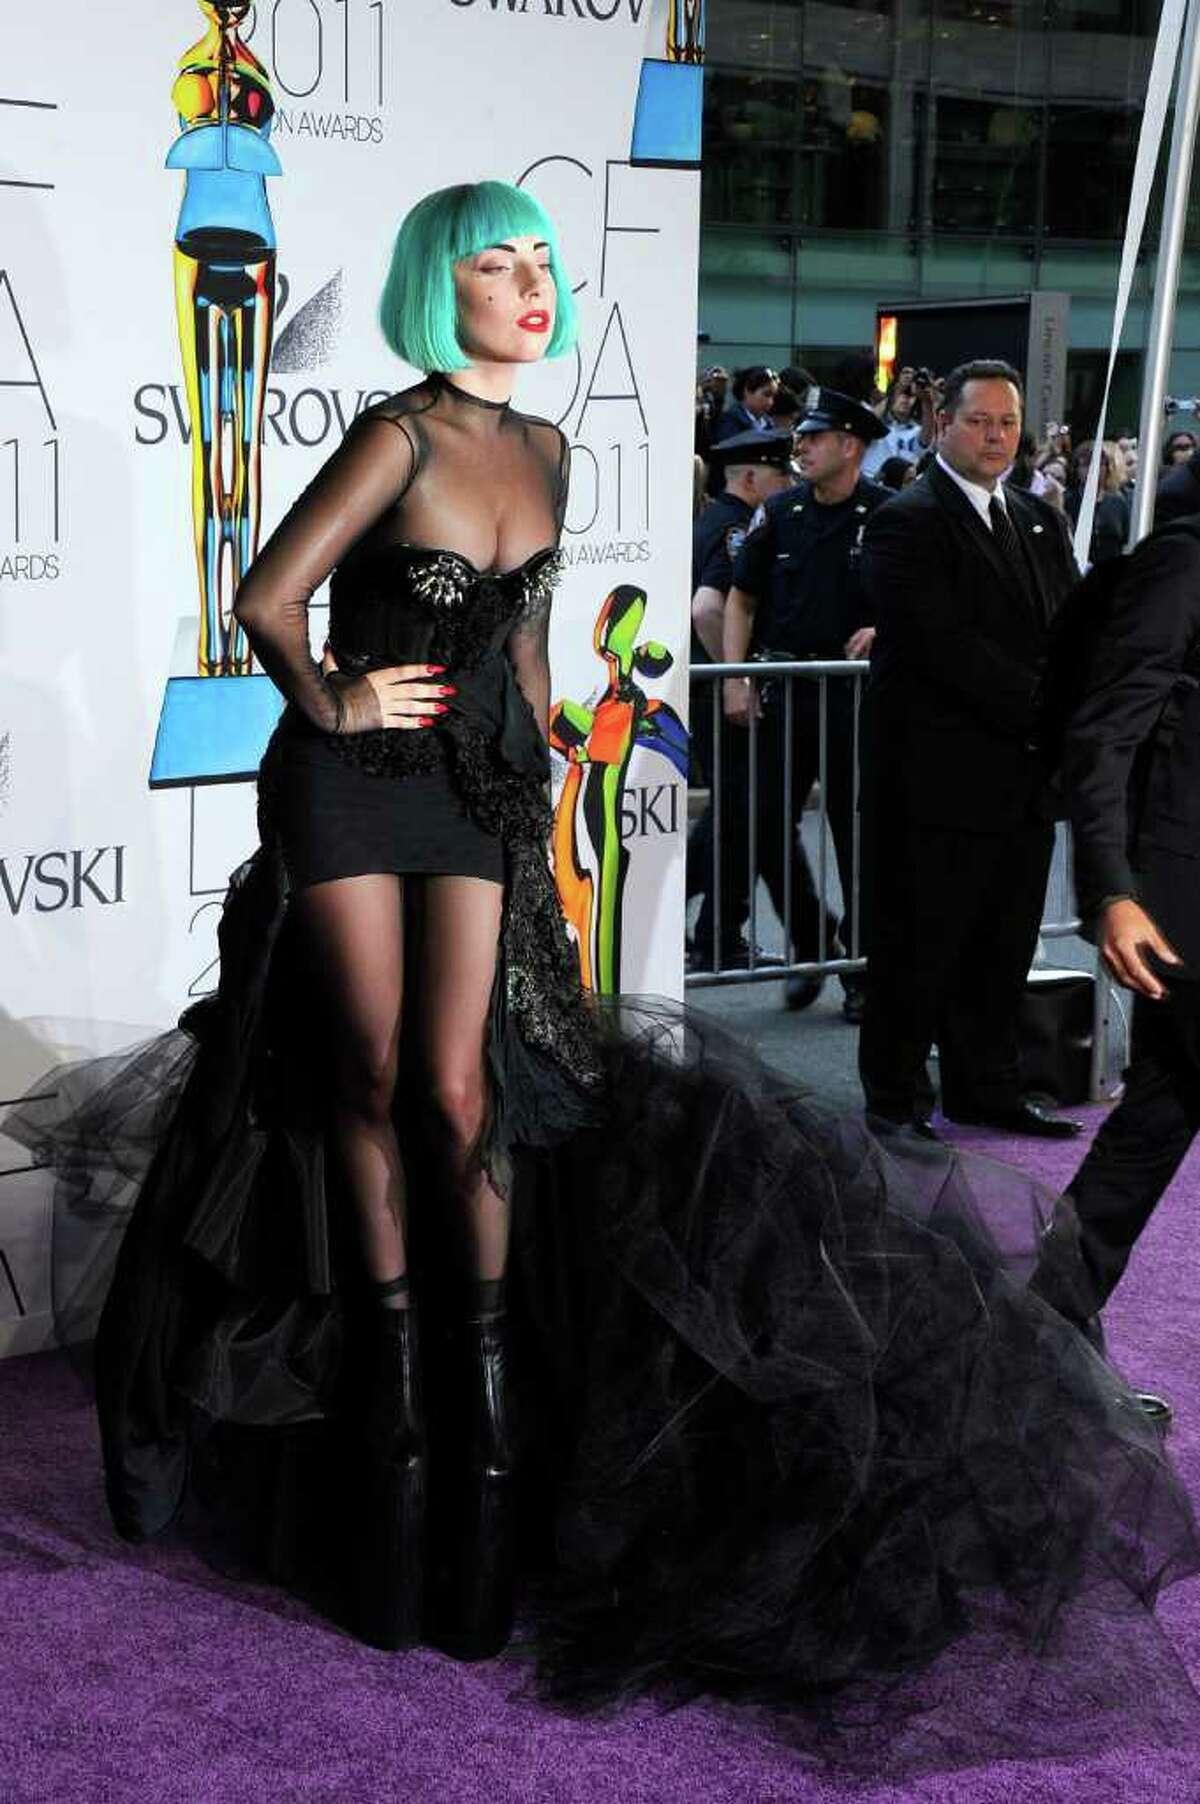 Lady Gaga attends the 2011 CFDA Fashion Awards at Alice Tully Hall, Lincoln Center on June 6, 2011 in New York City.